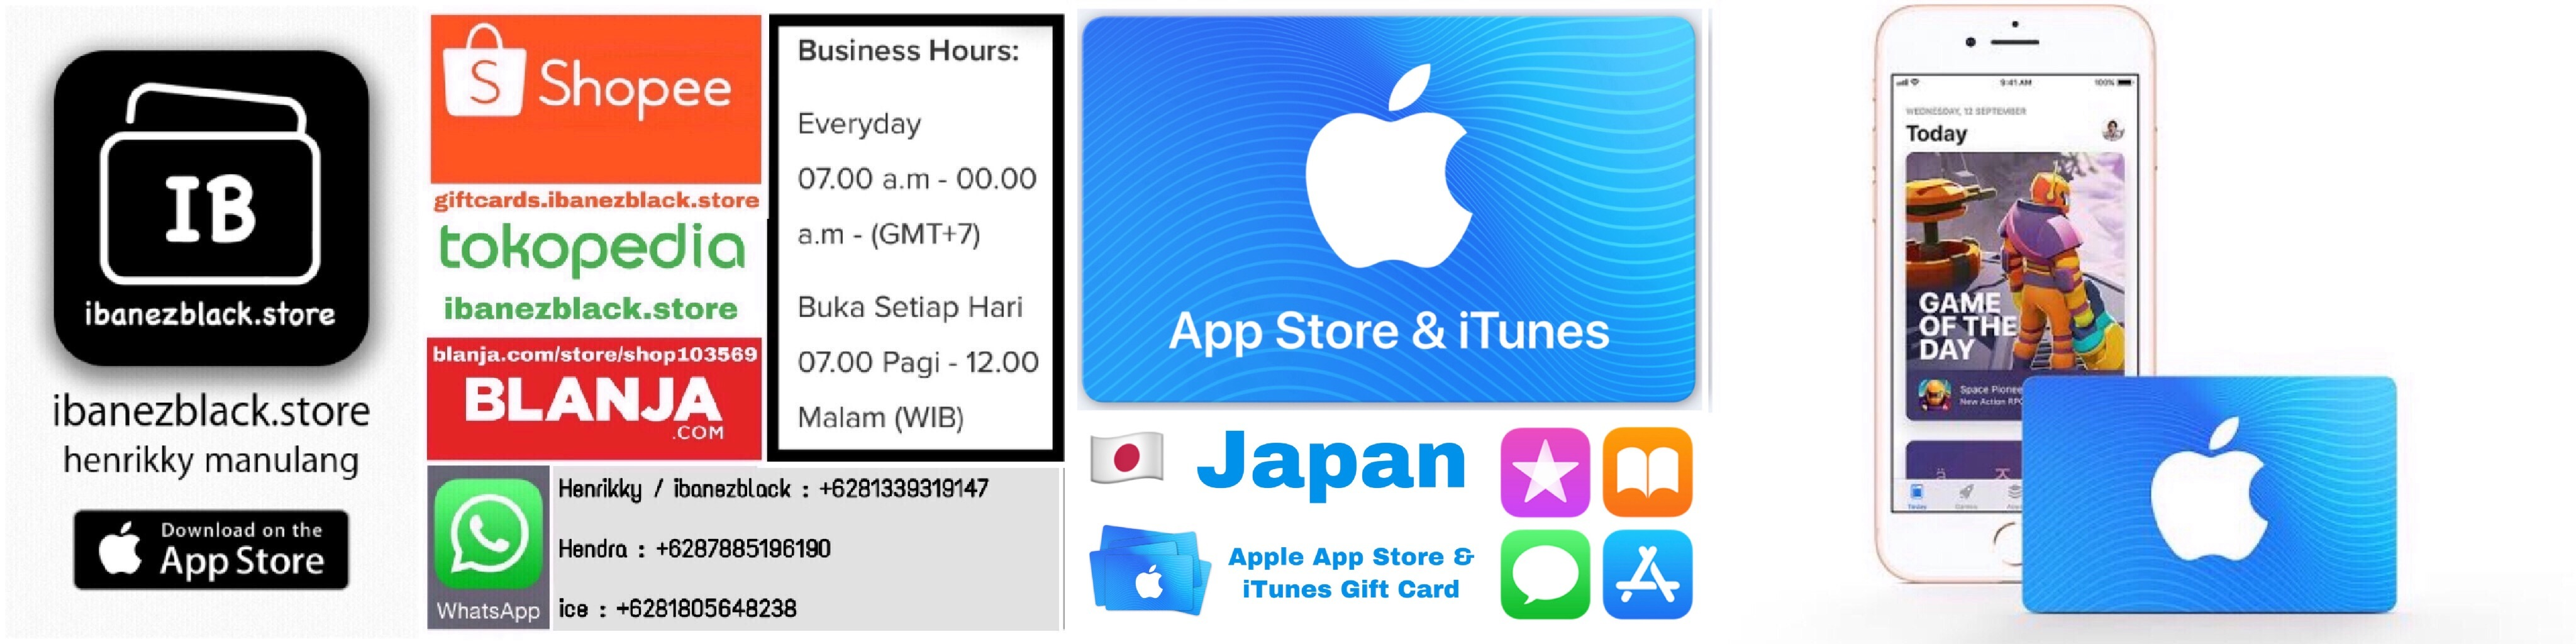 Apple App Store & iTunes Gift Card Japan